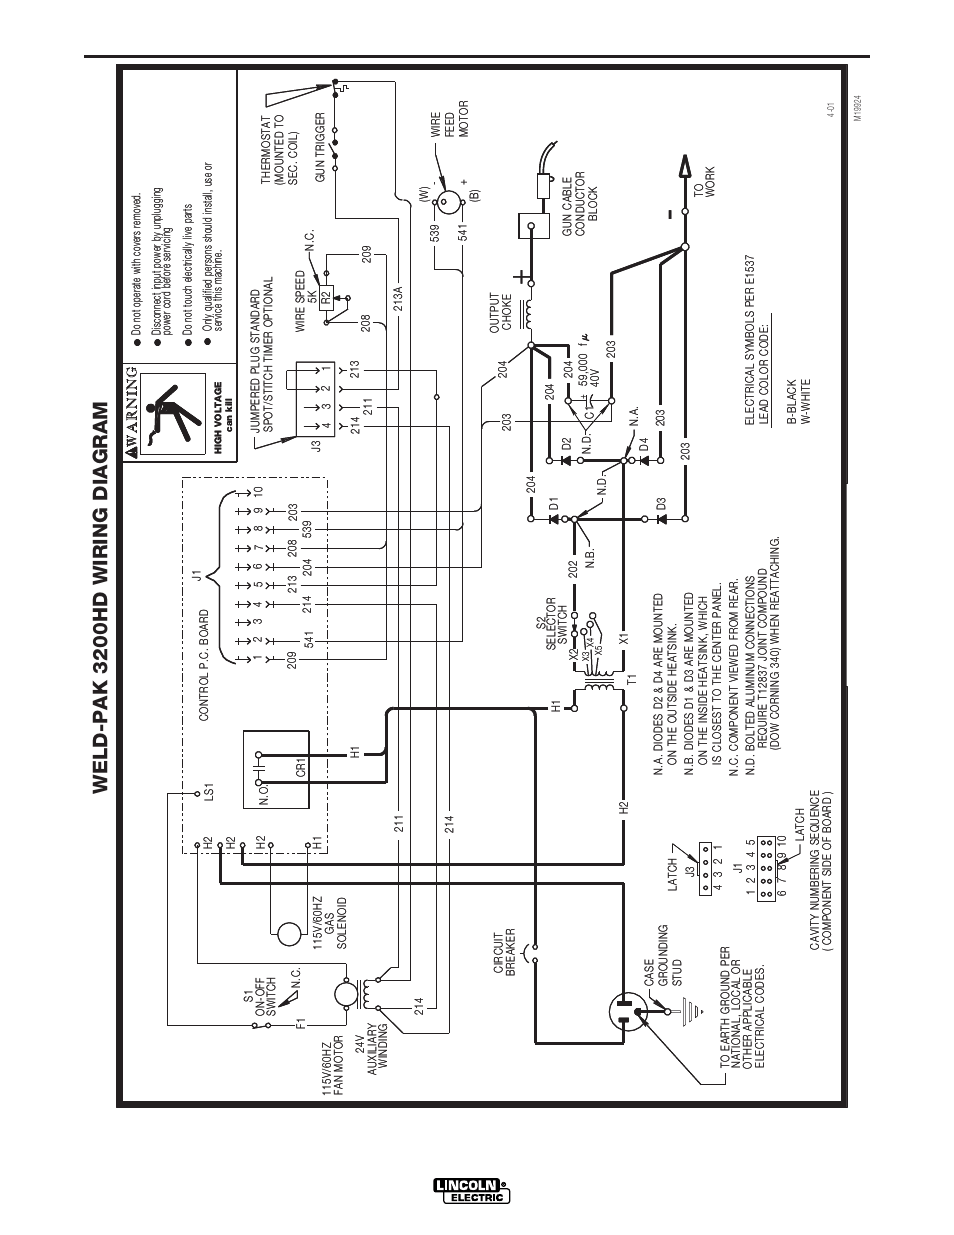 Cool Hobart Wire Diagrams Images Electrical And Wiring Diagram Lincoln Welder SA-200 Wiring-Diagram Mig Welder Schematic Diagram Miller 250 Welder Parts Breakdown At IT-Energia.com